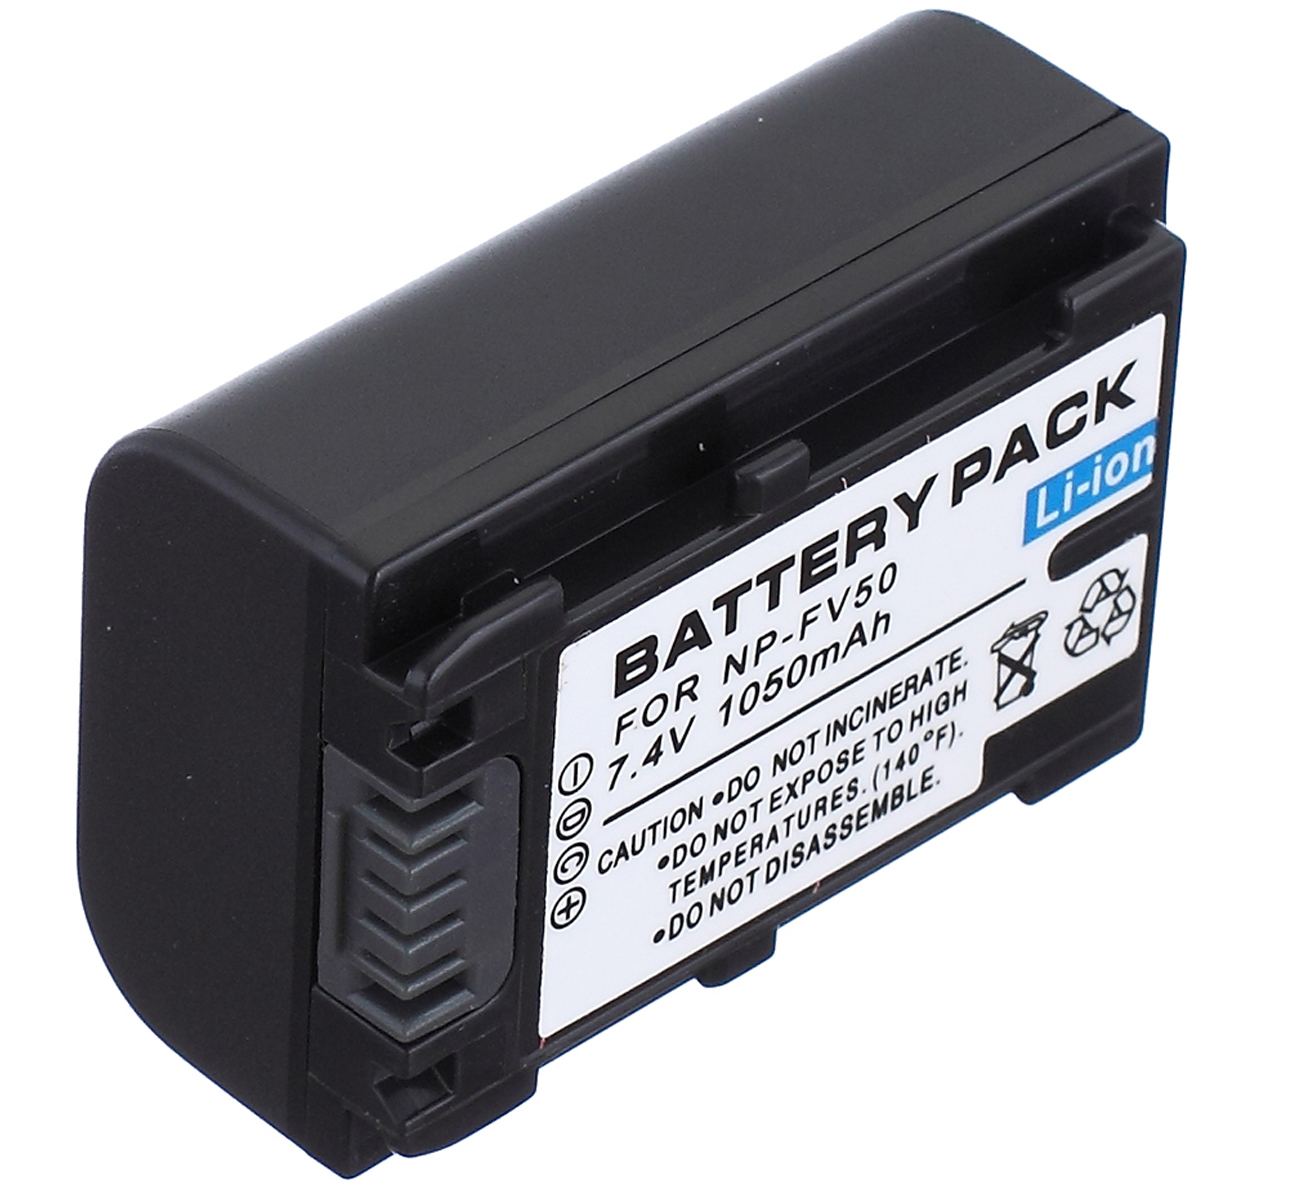 HDR-CX115E HDR-CX150E HDR-CX116E HDR-CX130E Rechargeable Li-ion Batteries for Sony HDR-CX110E HDR-CX155E Handycam Camcorder